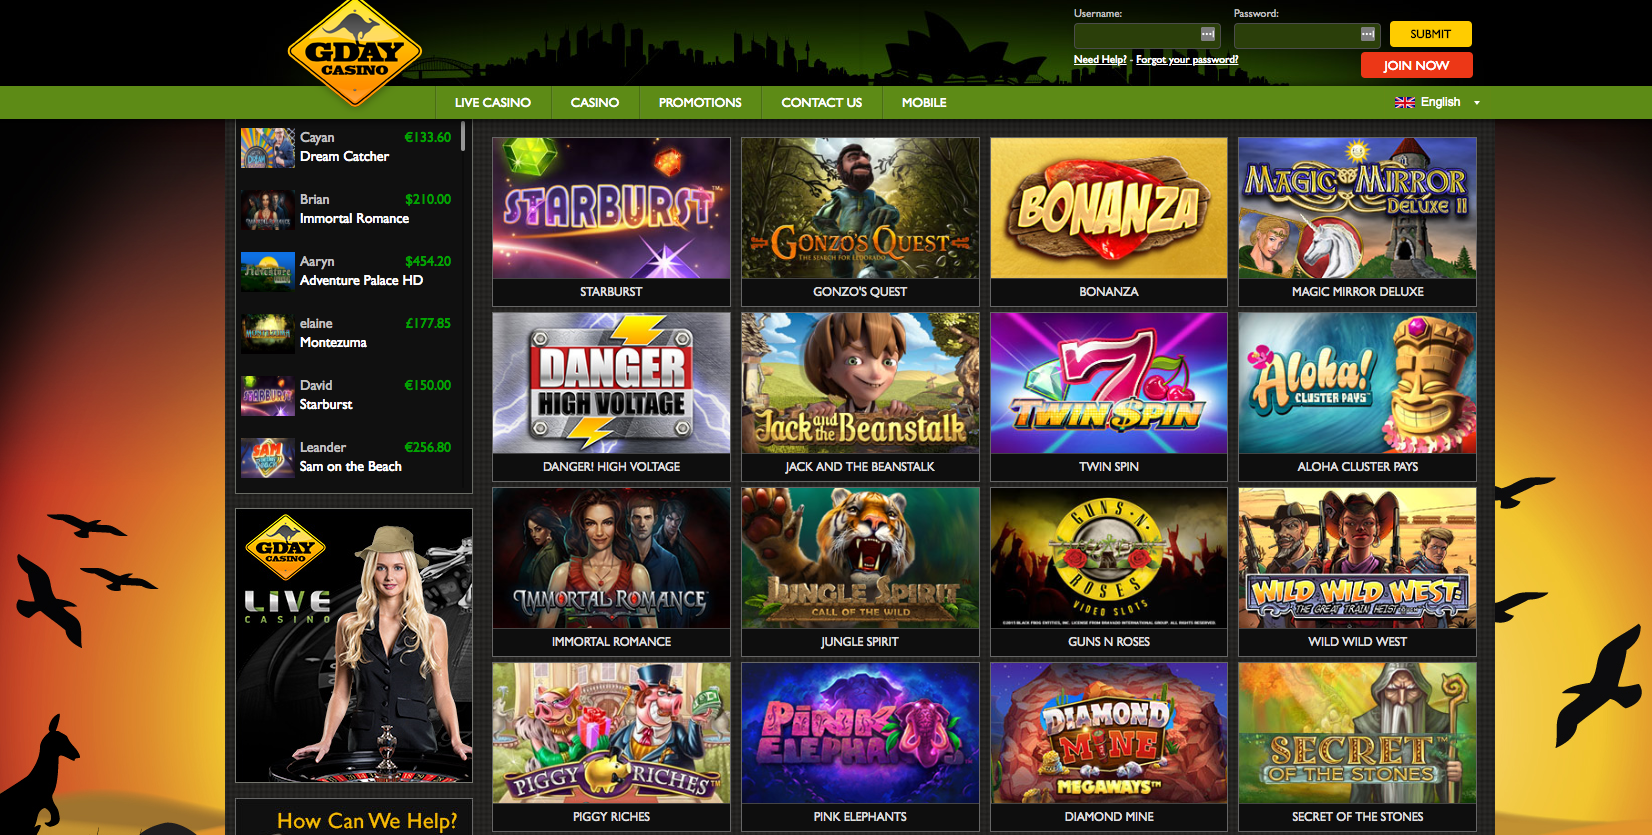 A screenshot of some of the popular games at GdayCasino